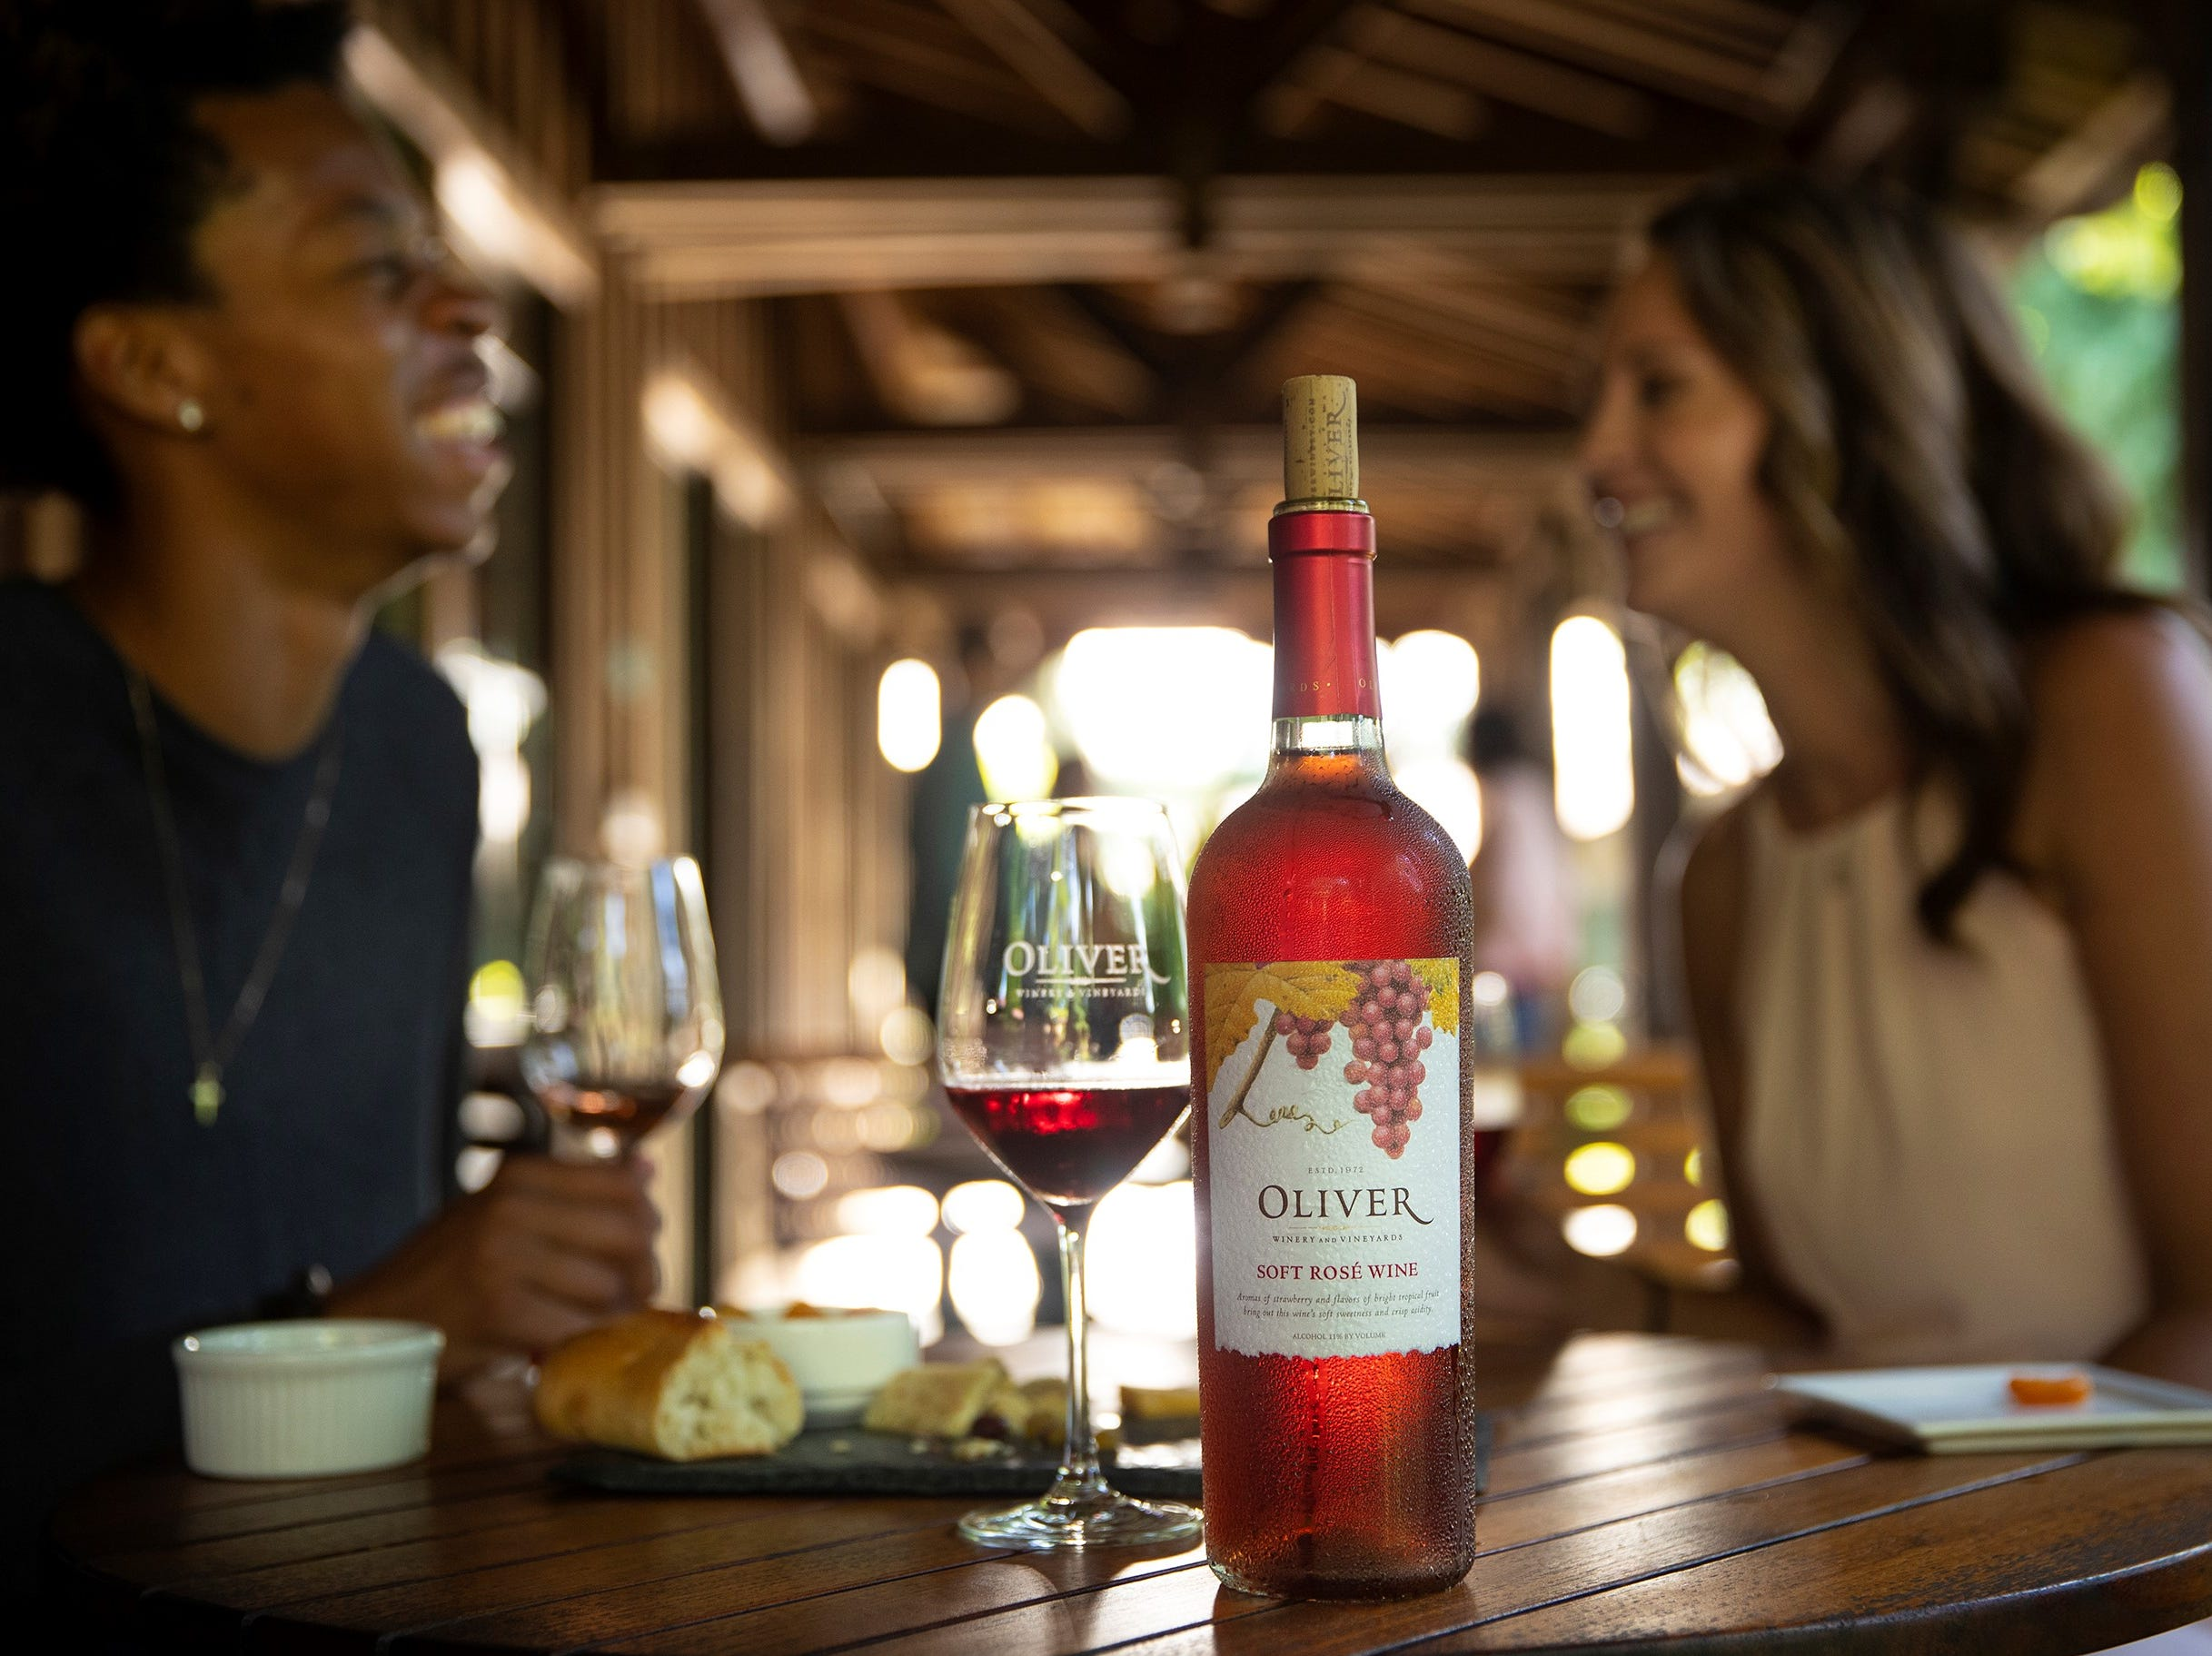 The Soft Rosé wine here is a sibling to the Soft Red and Soft White wines that are Oliver's most popular.